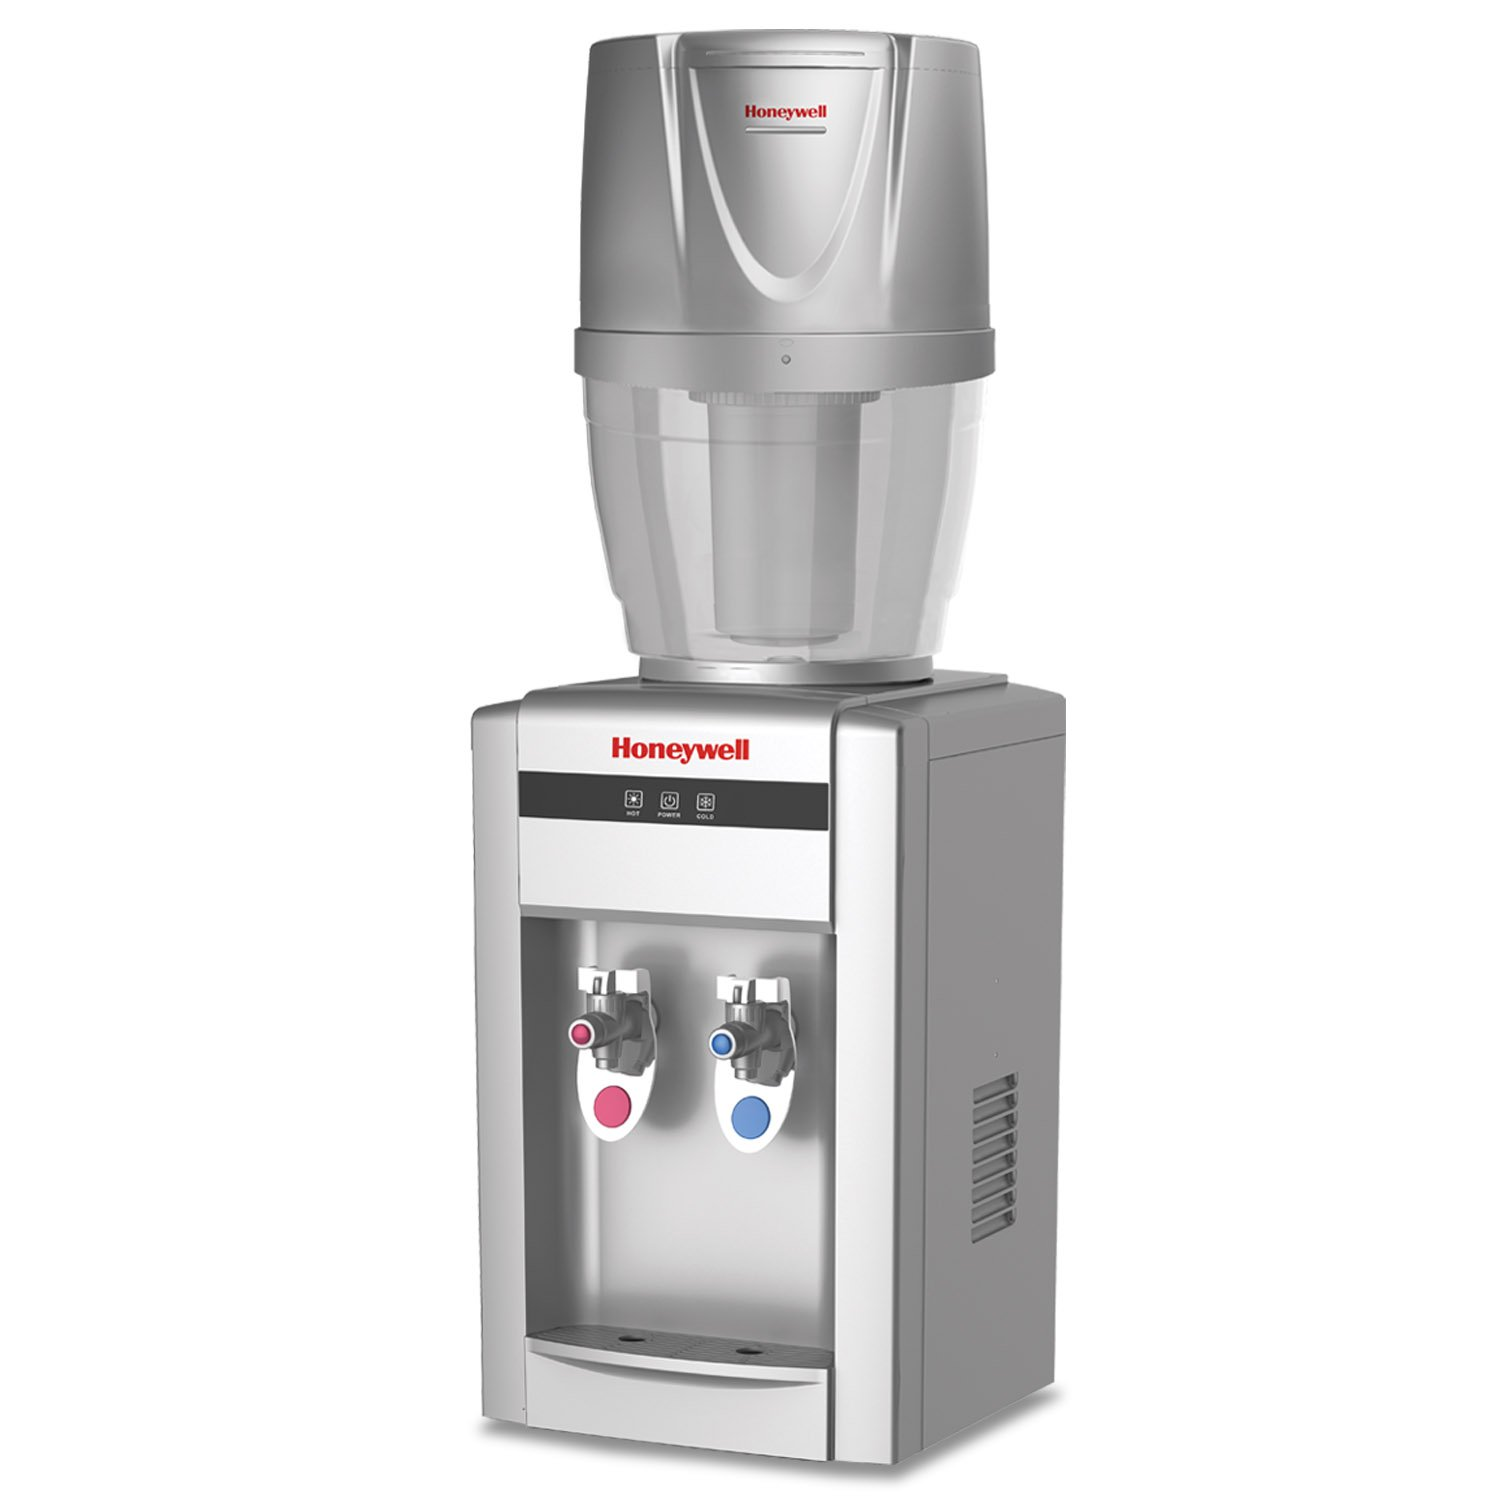 Honeywell HWB2052S/HWB101S 21 Inch Tabletop Water Cooler Dispenser, Hot And  Cold Temperatures With 4 Gallon Filtration System, Silver     Amazon.com